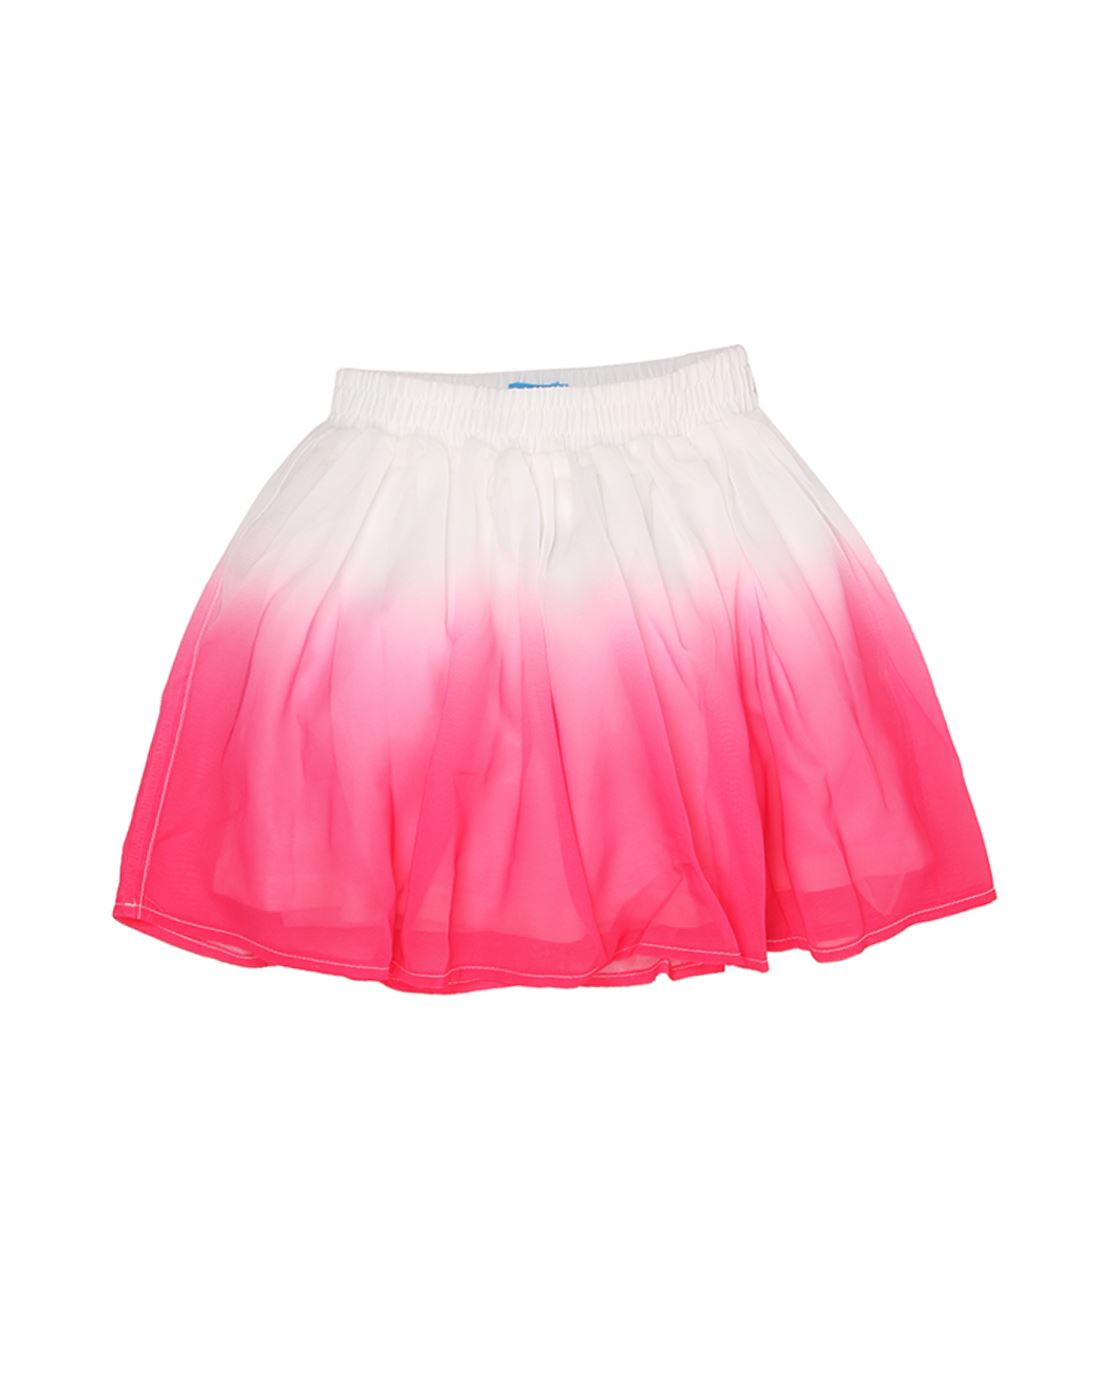 The Children's Place Girls Casual Multicolor Skirt